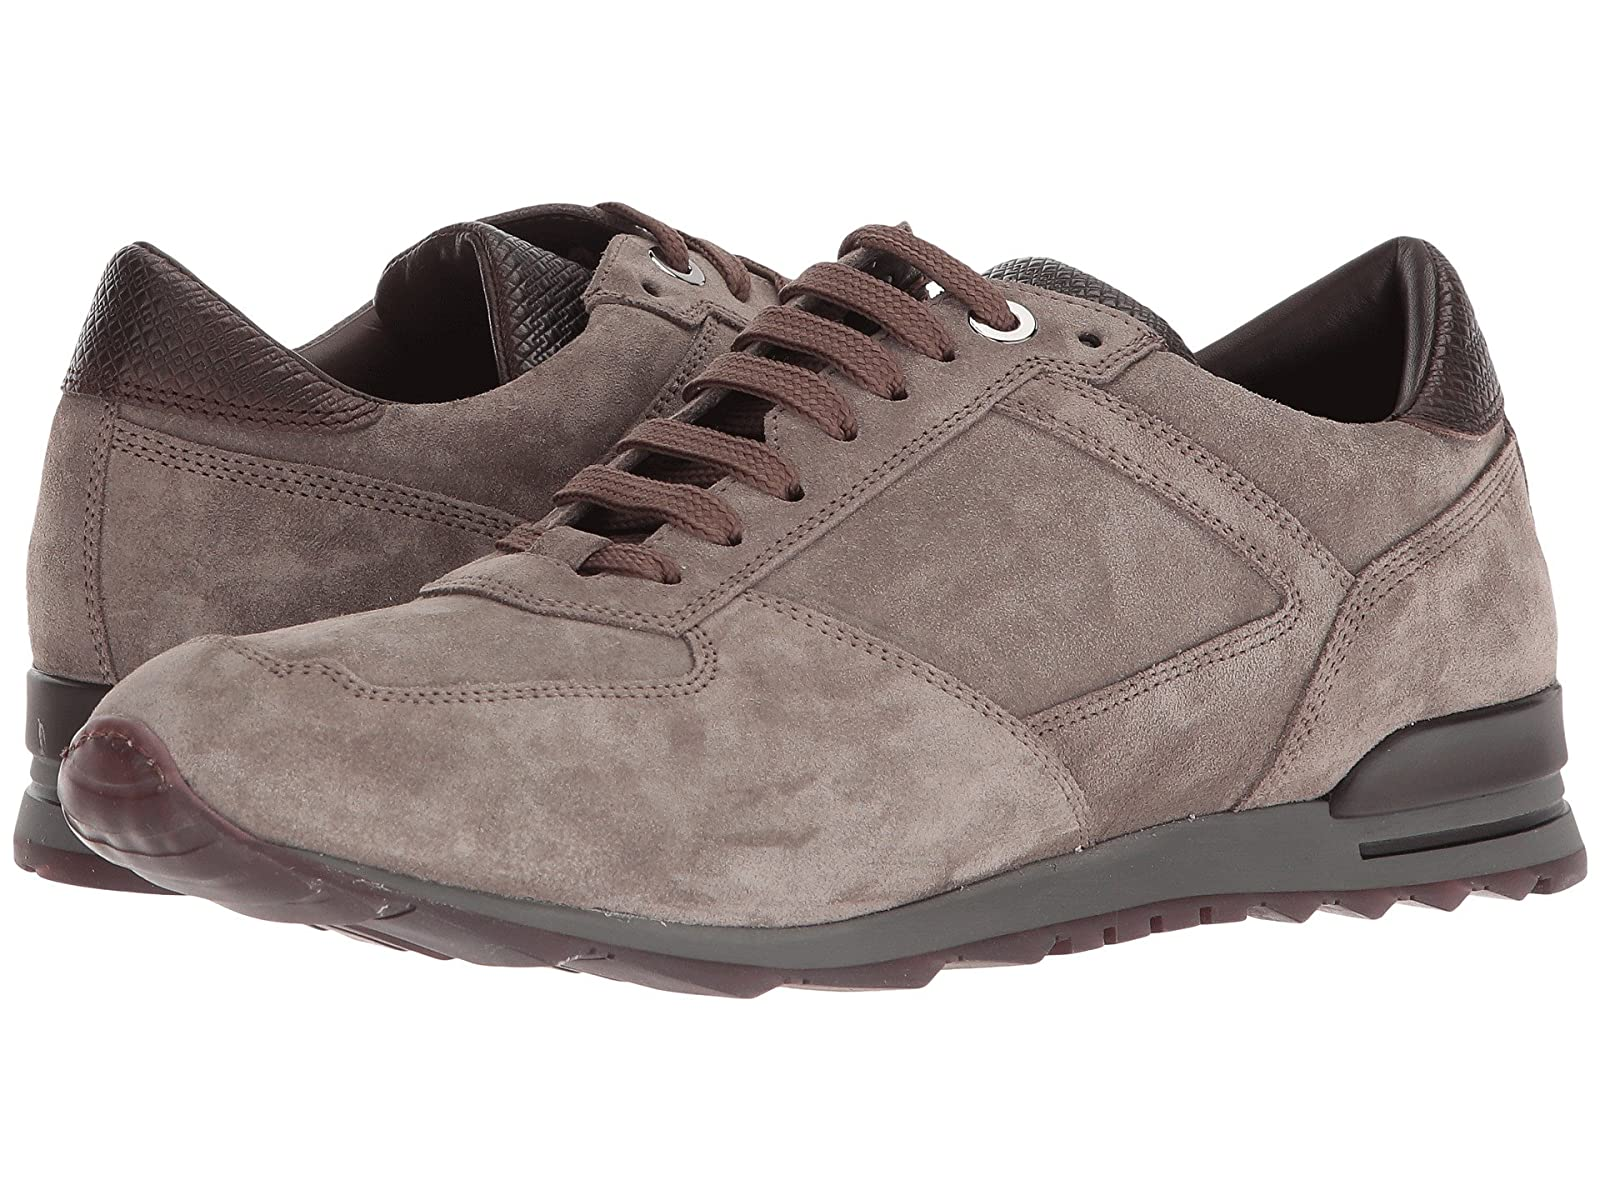 Canali Suede/Leather RunnerAtmospheric grades have affordable shoes